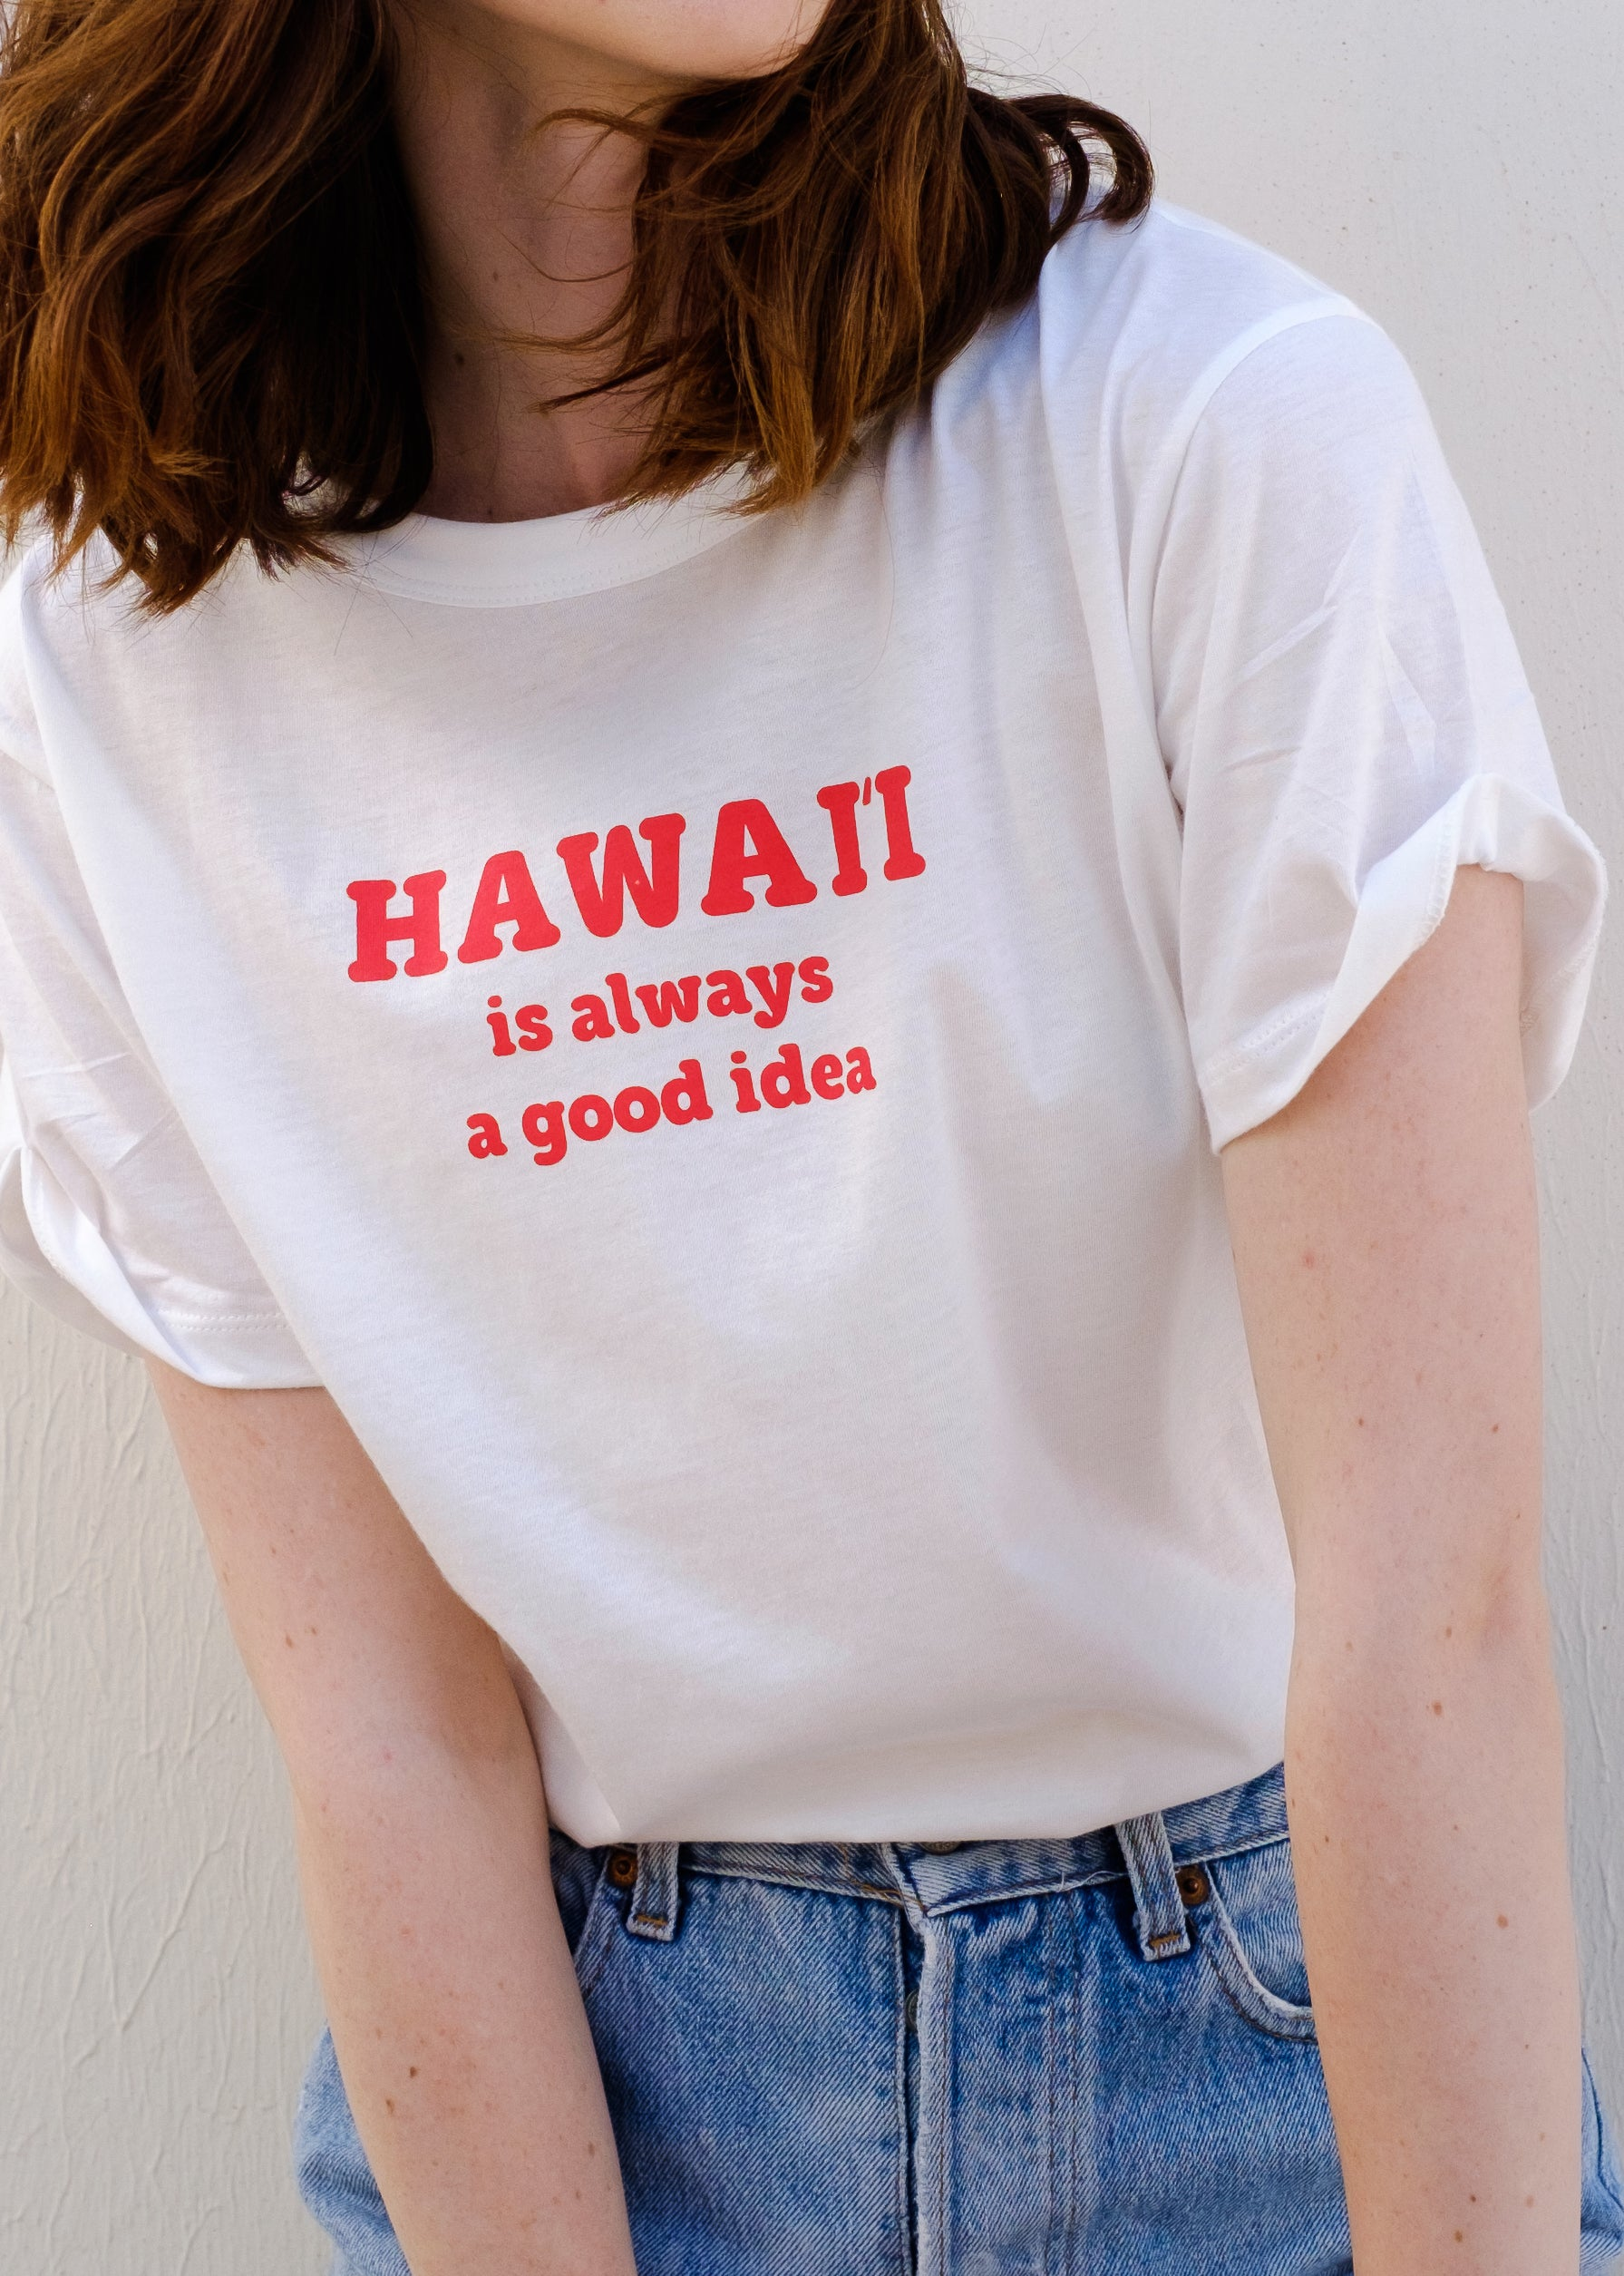 Women's HI is a good idea Tee